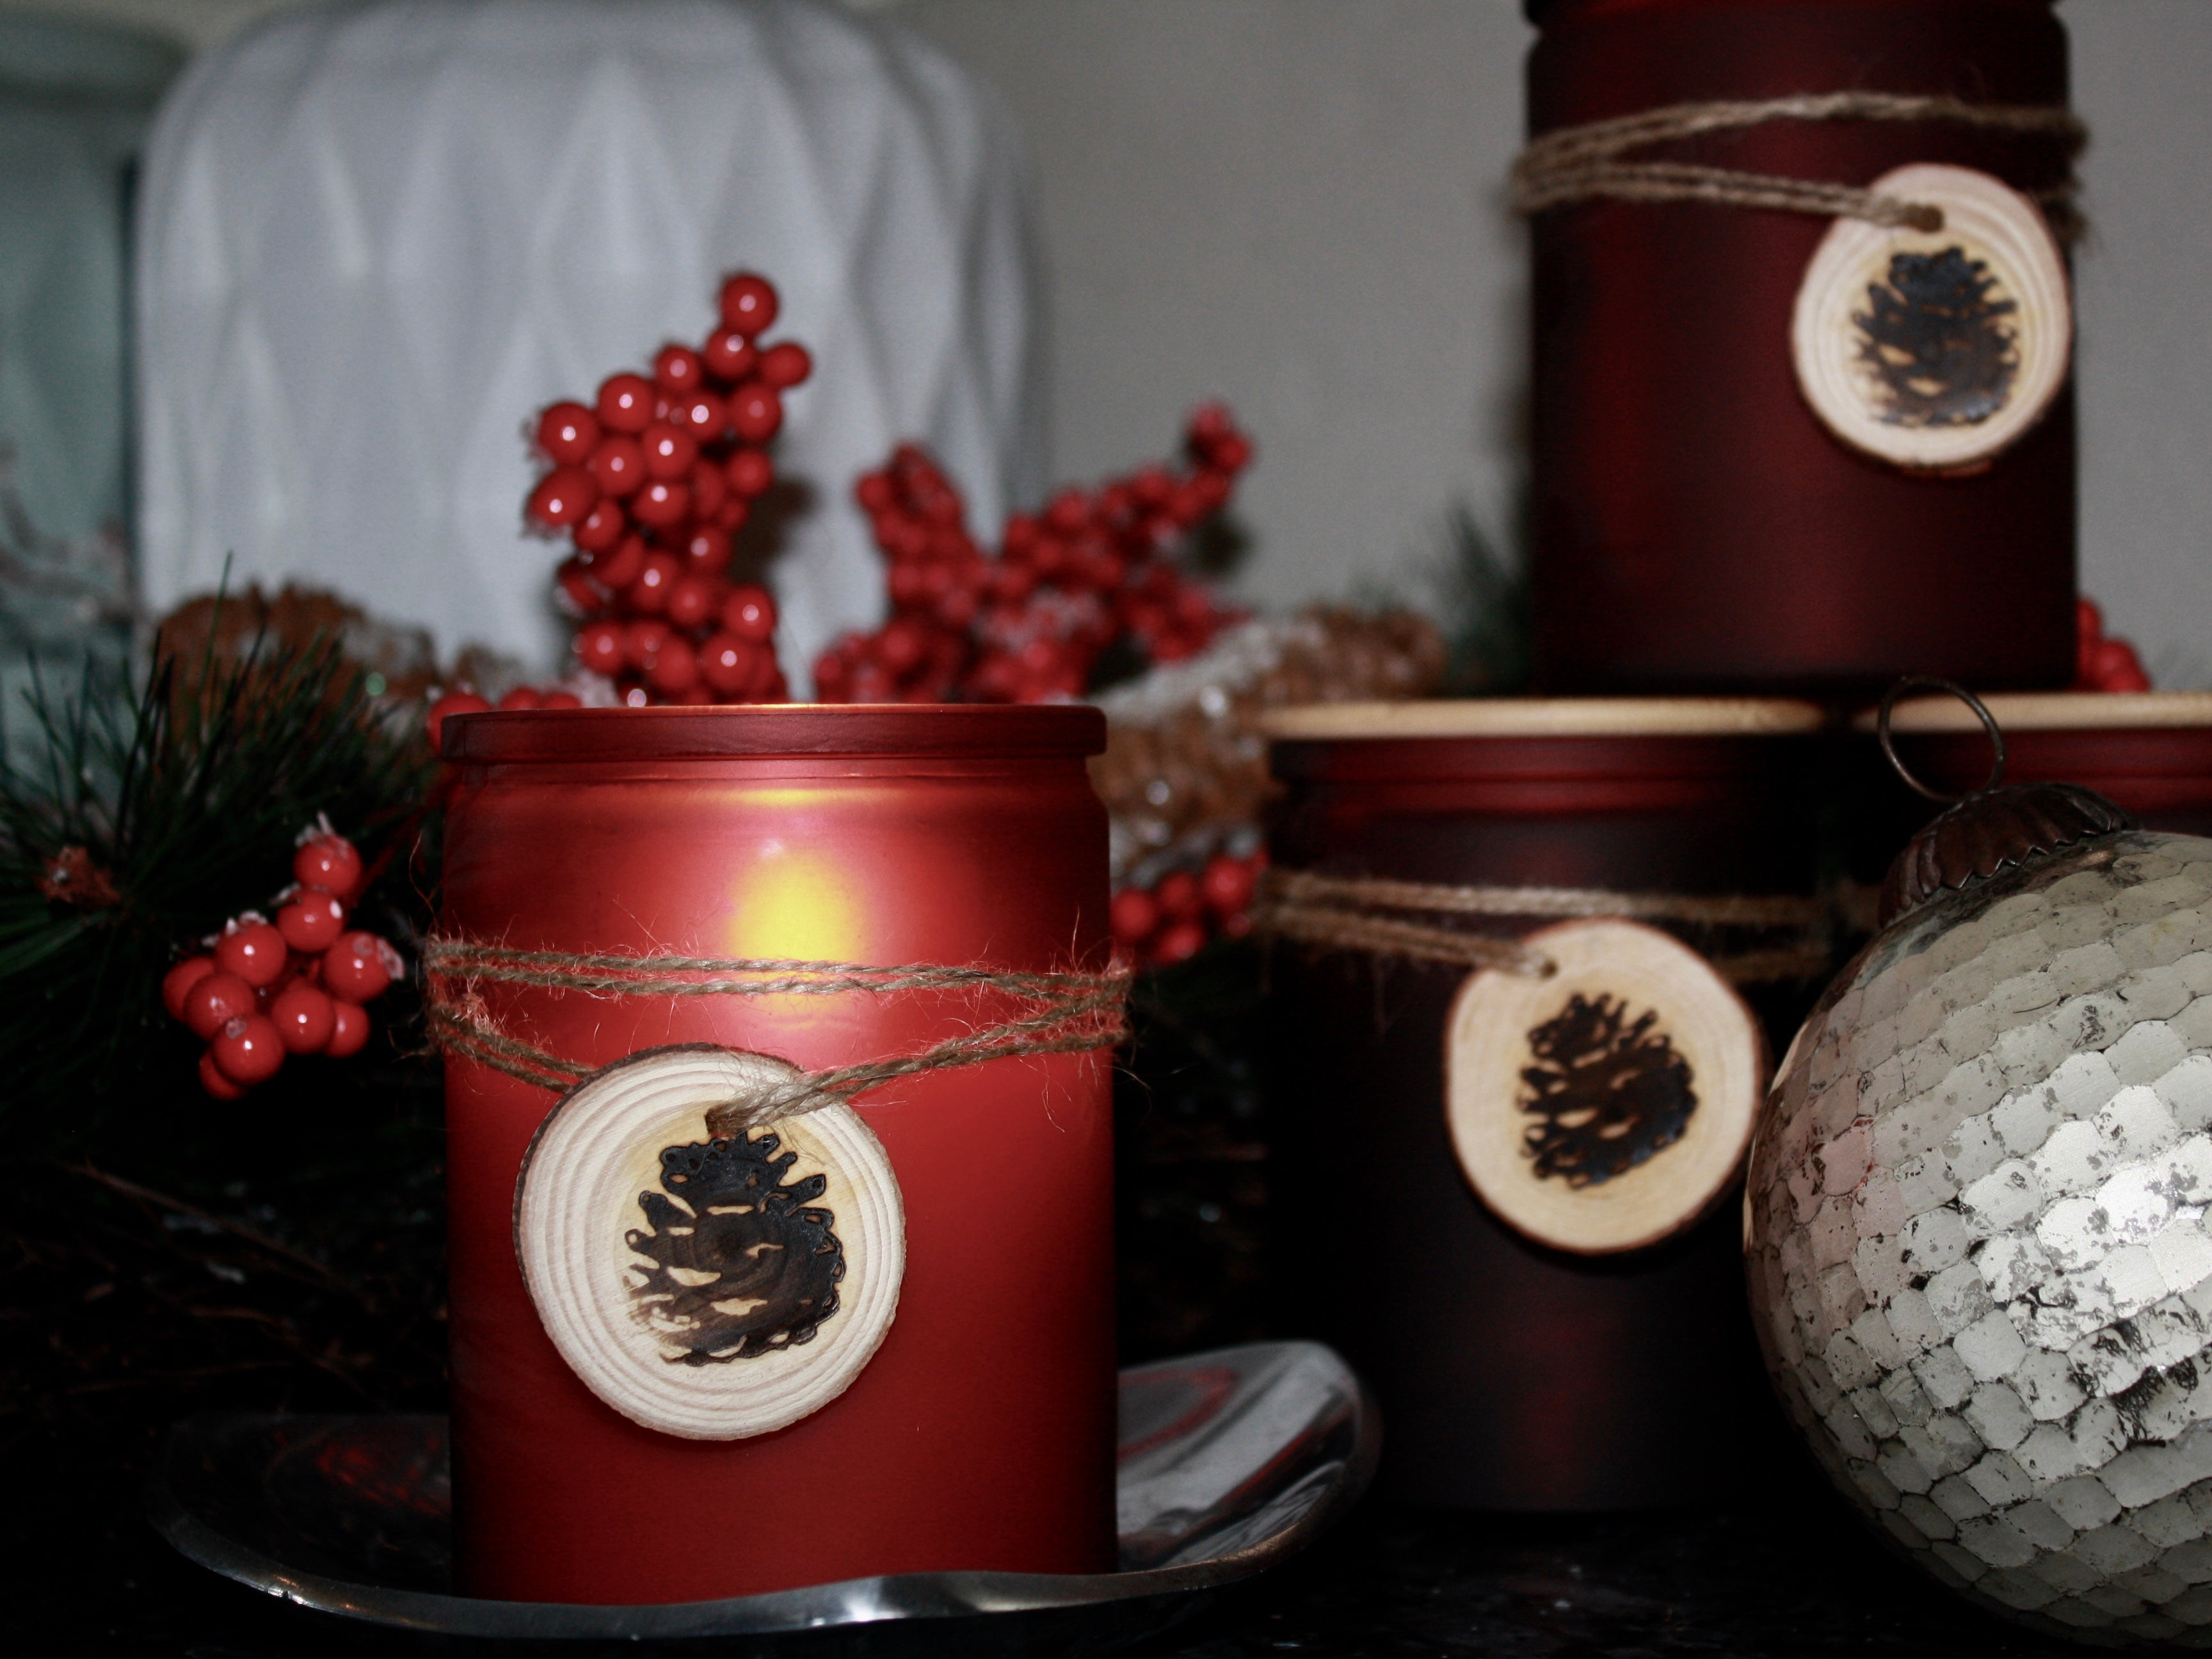 Spiced Apple Trails - 12 oz. Custom Soy Blend Jar with Maple Wood Lid -  Available in Frosted White, Red or Pine